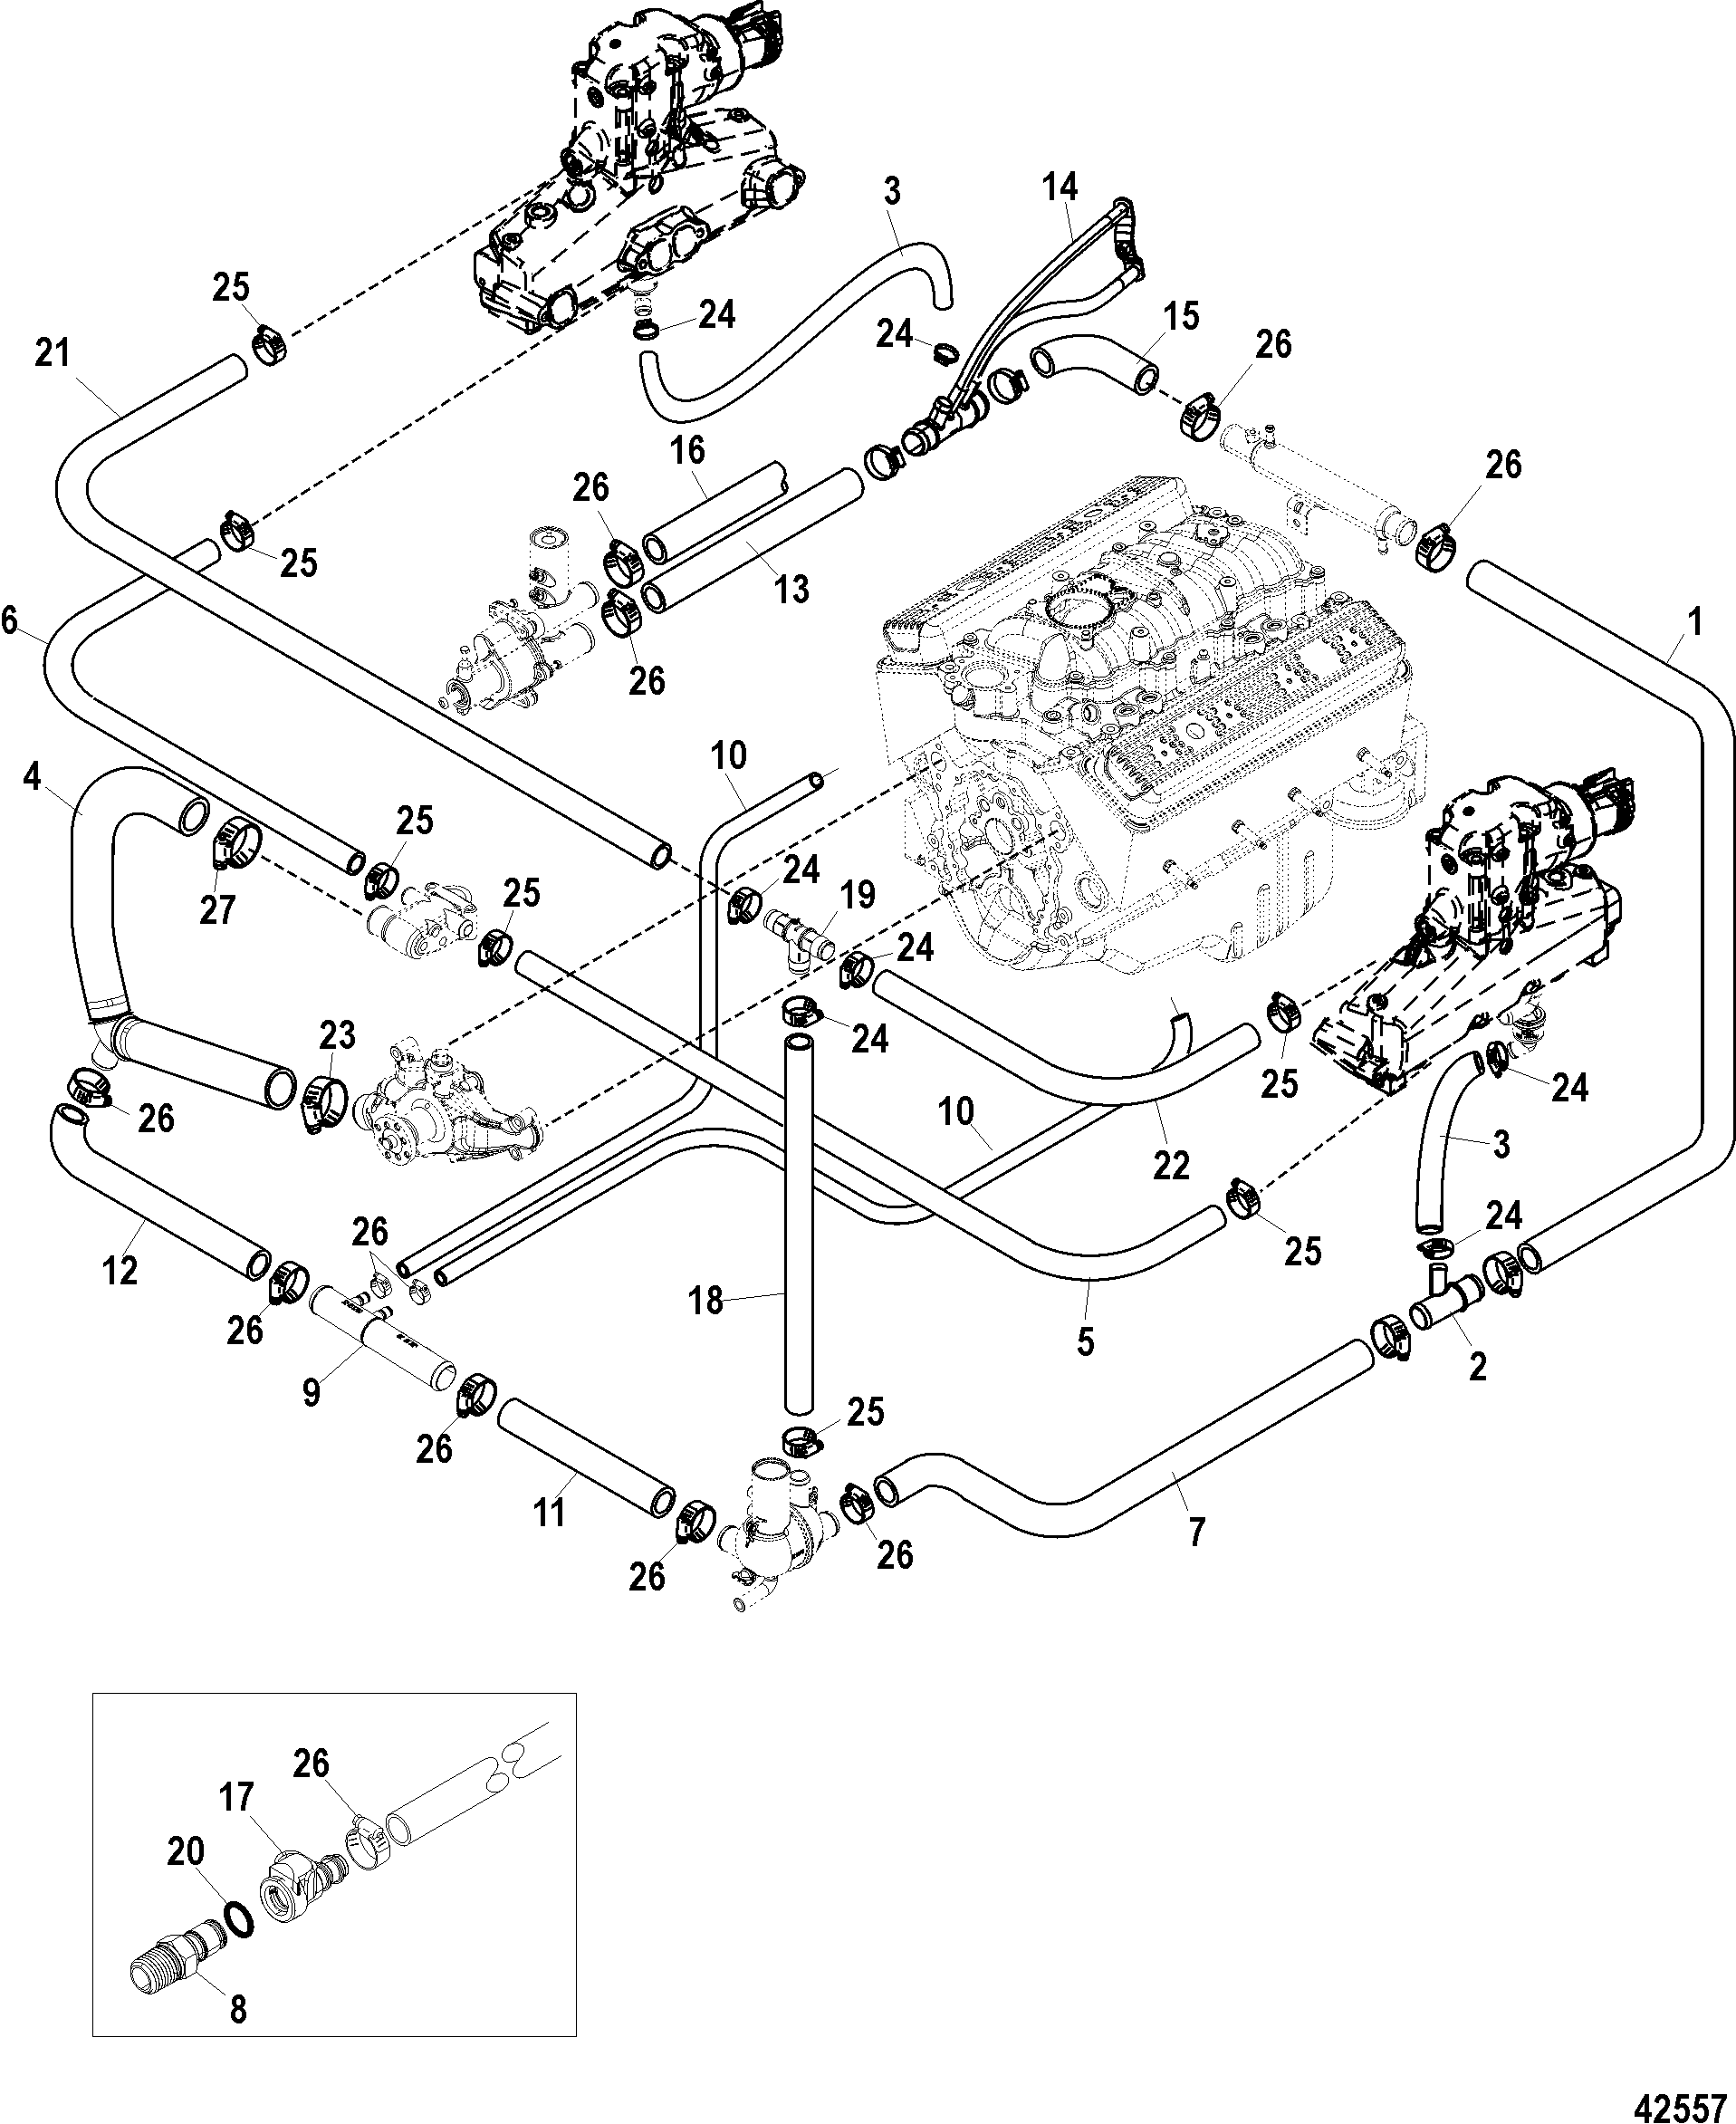 1999 chevy tahoe cooling system diagram trusted wiring diagram 99 chevy tahoe wiring diagram 2001 chevy tahoe cooling system diagram wiring diagram database \\u2022 duramax diesel engine diagram 1999 chevy tahoe cooling system diagram